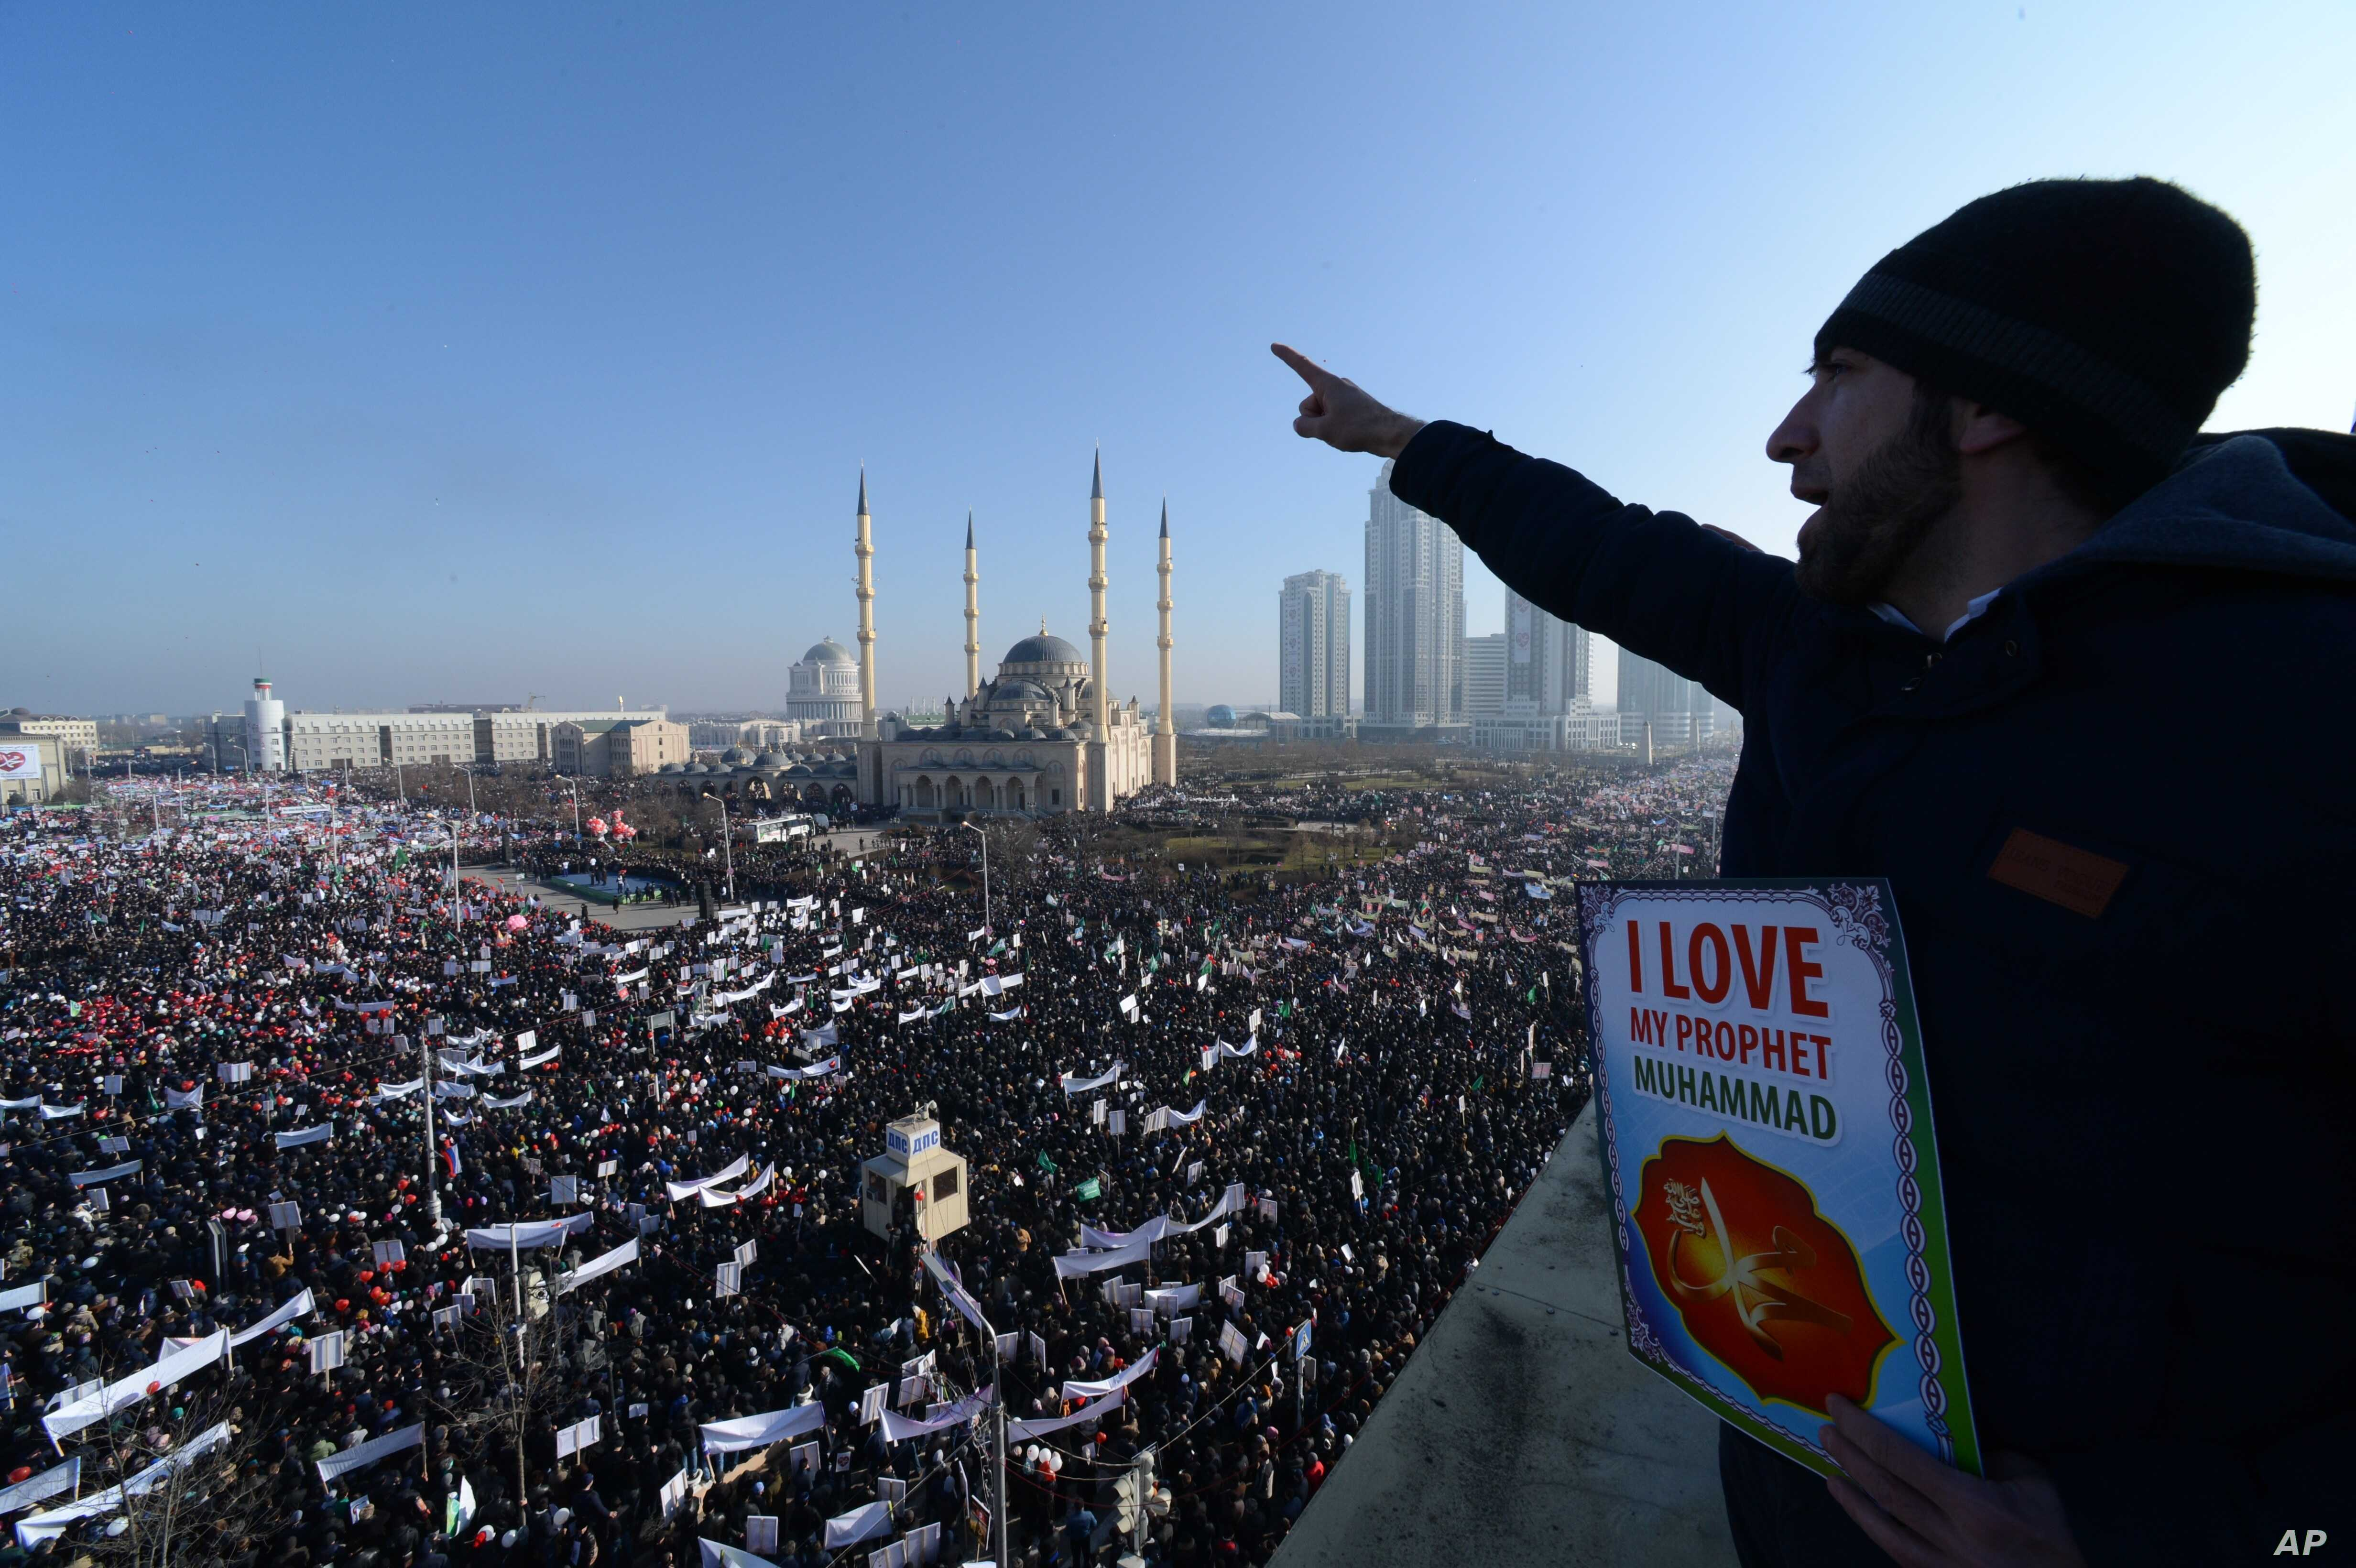 Chechen Muslims rally in their regional capital of Grozny condemning Western lampooning of their prophet, Muhammad, on Jan. 19, 2015.